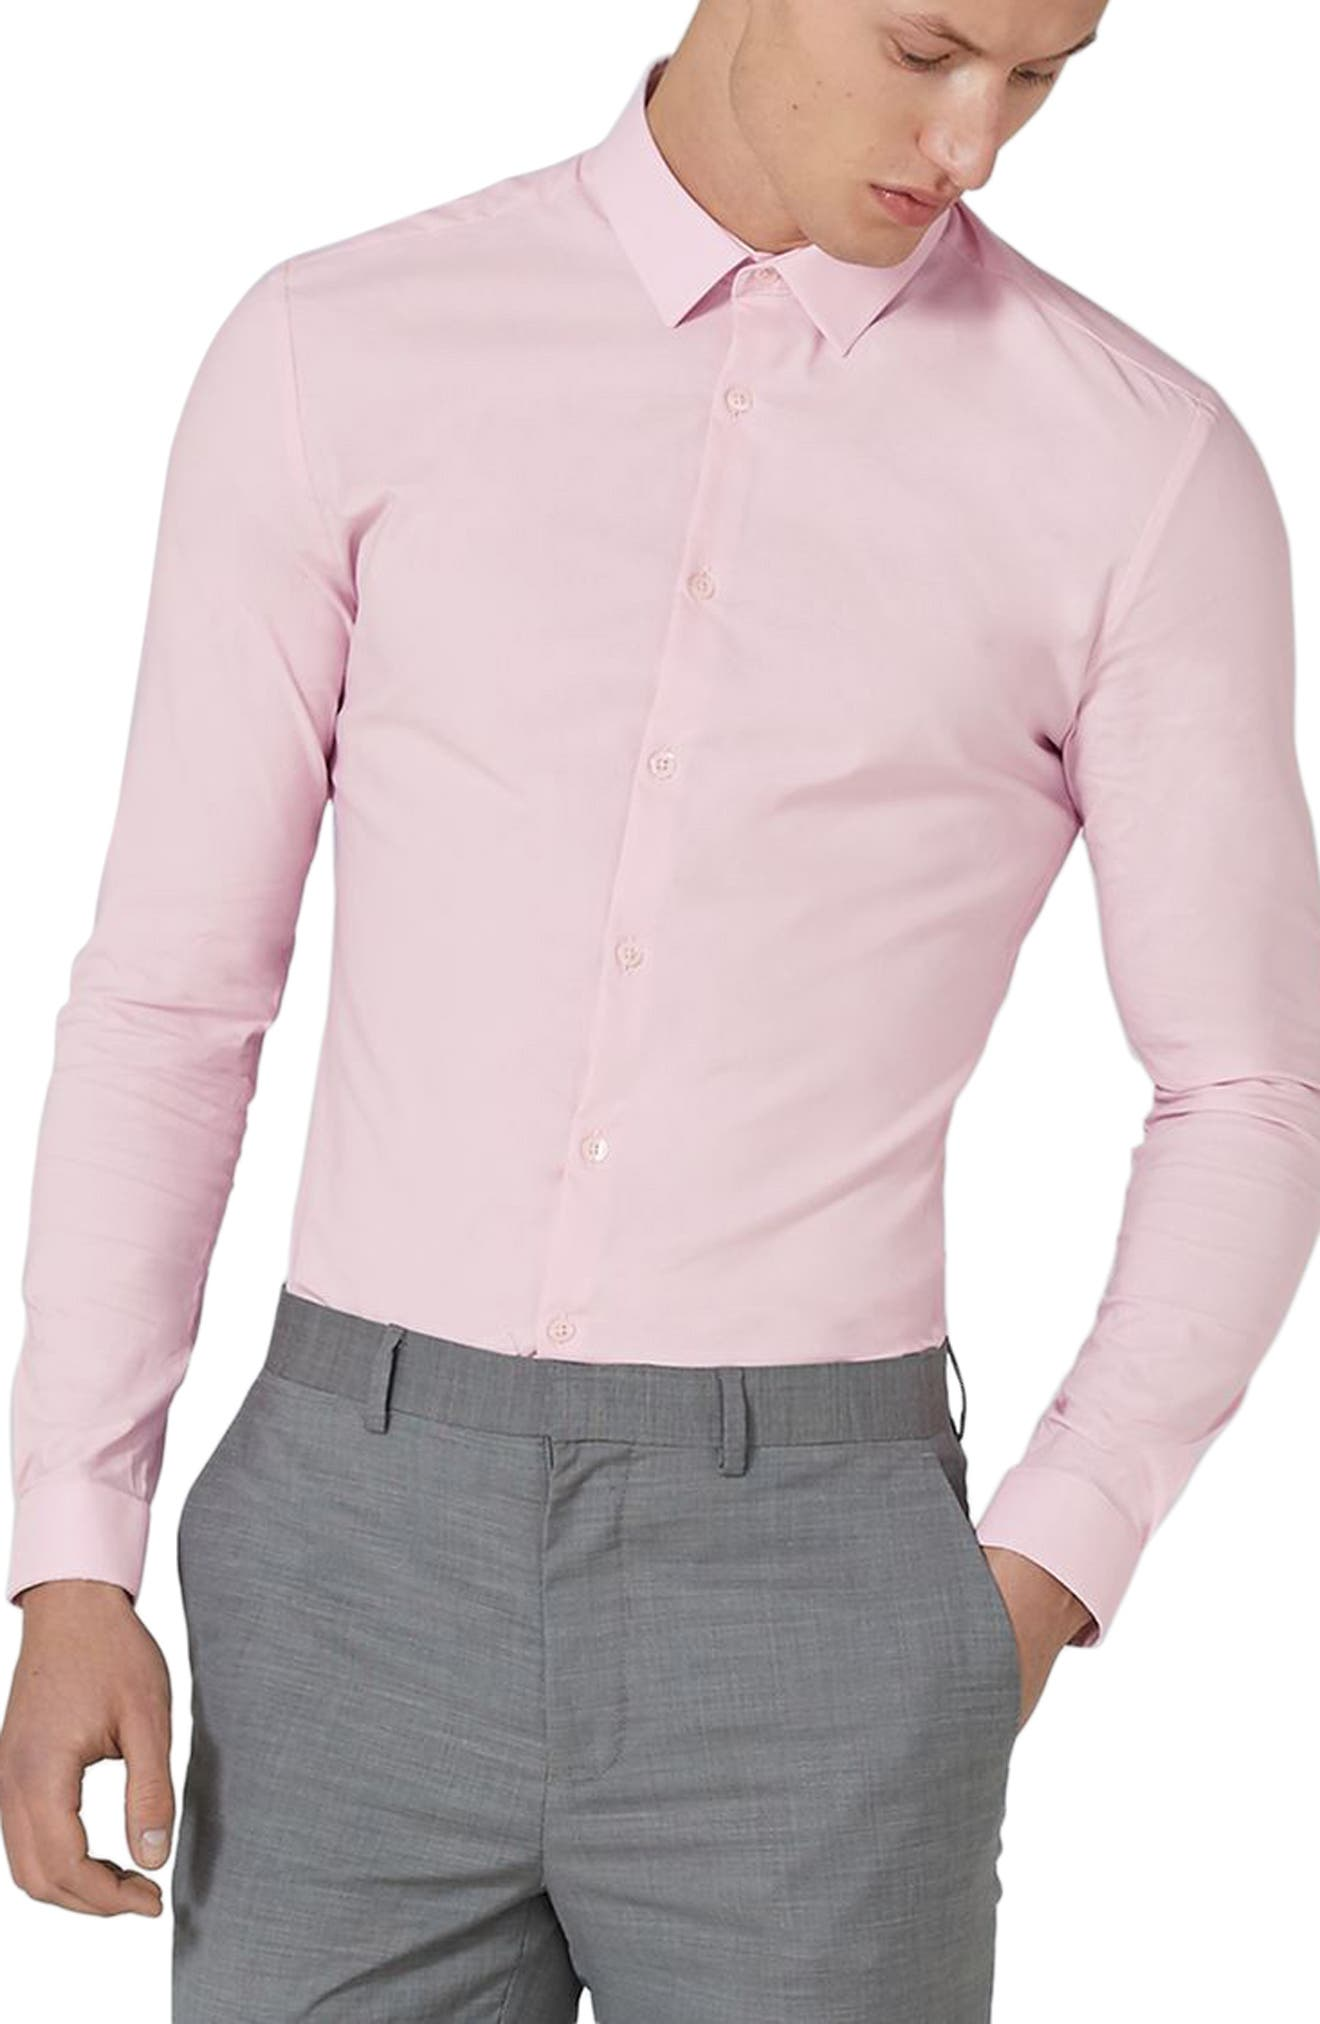 Main Image - Topman Muscle Fit Dress Shirt